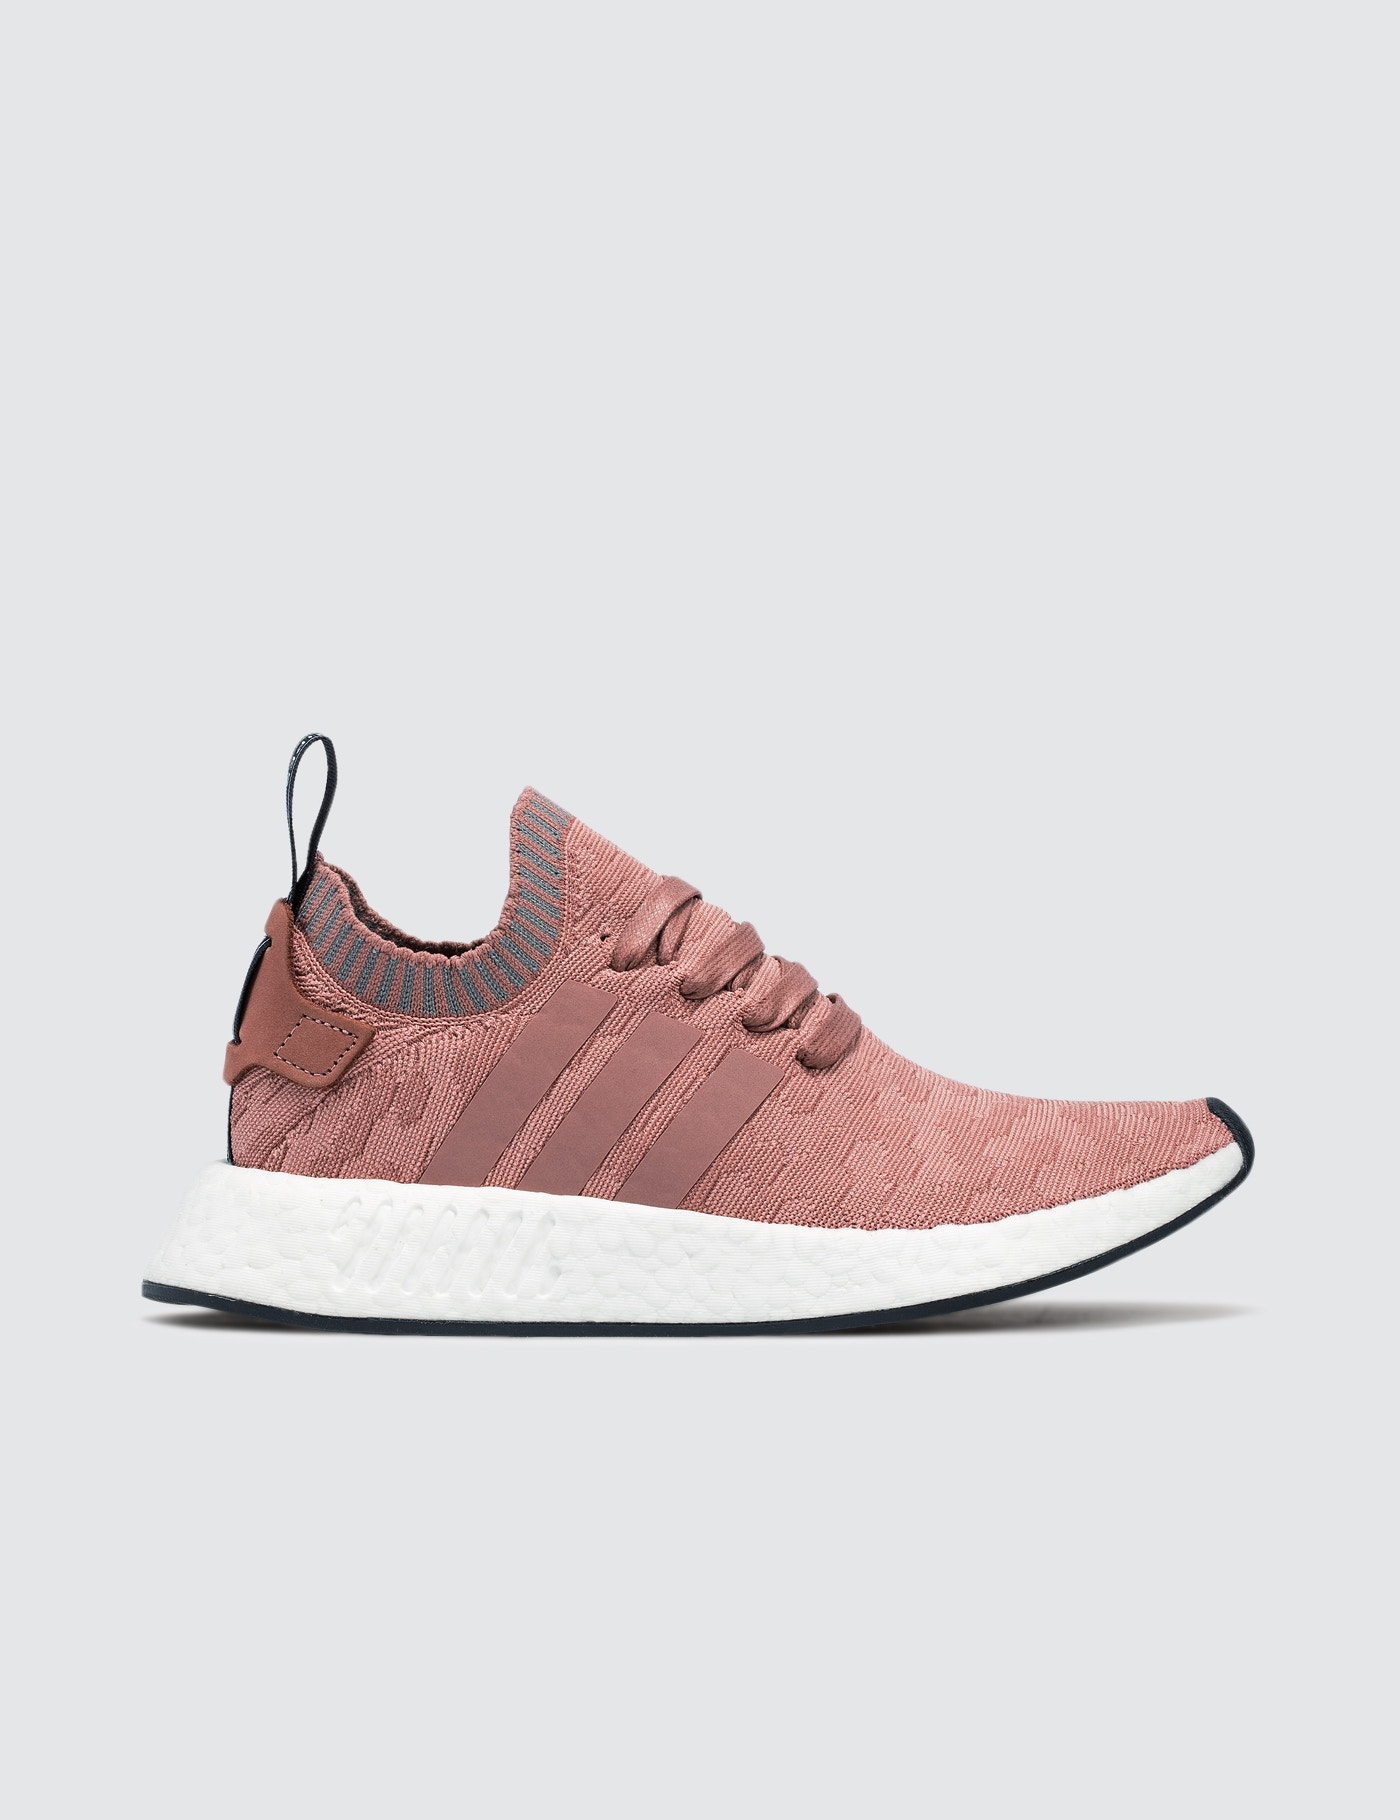 cheap for discount cc08c 68920 NMD R2 PK, Adidas Originals